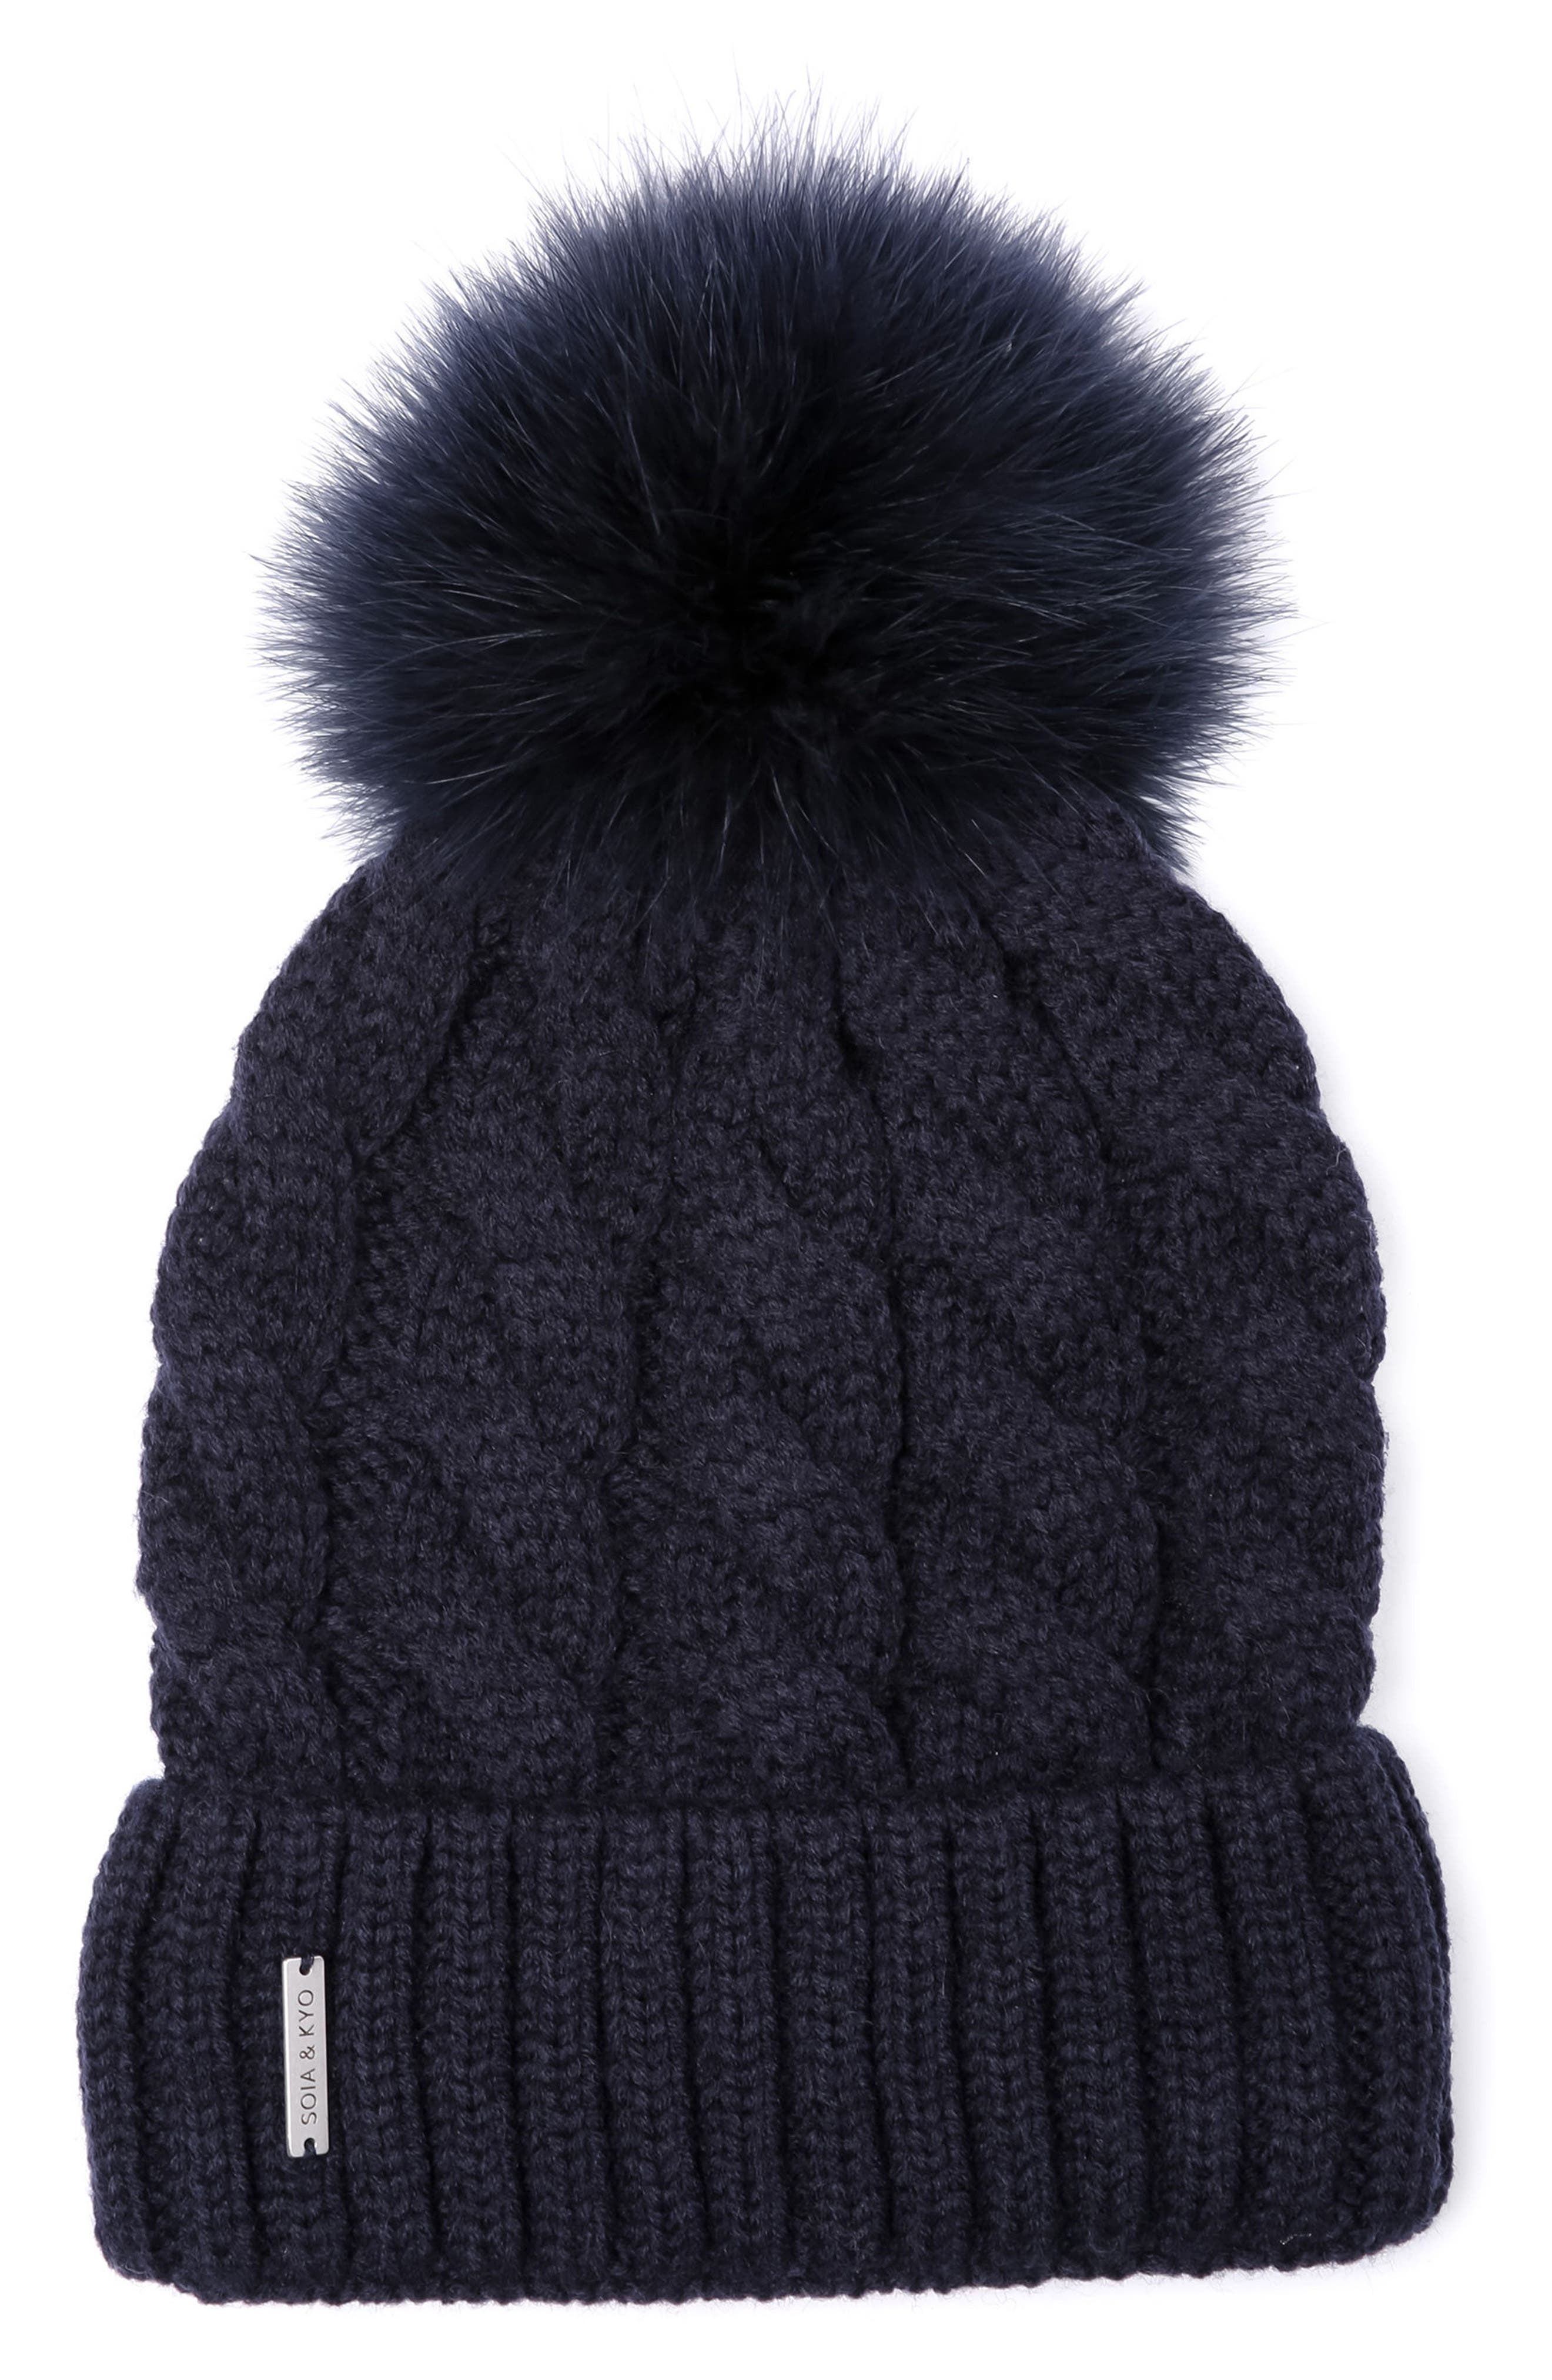 Alternate Image 1 Selected - Soia & Kyo Cable Knit Beanie with Removable Feather Pompom